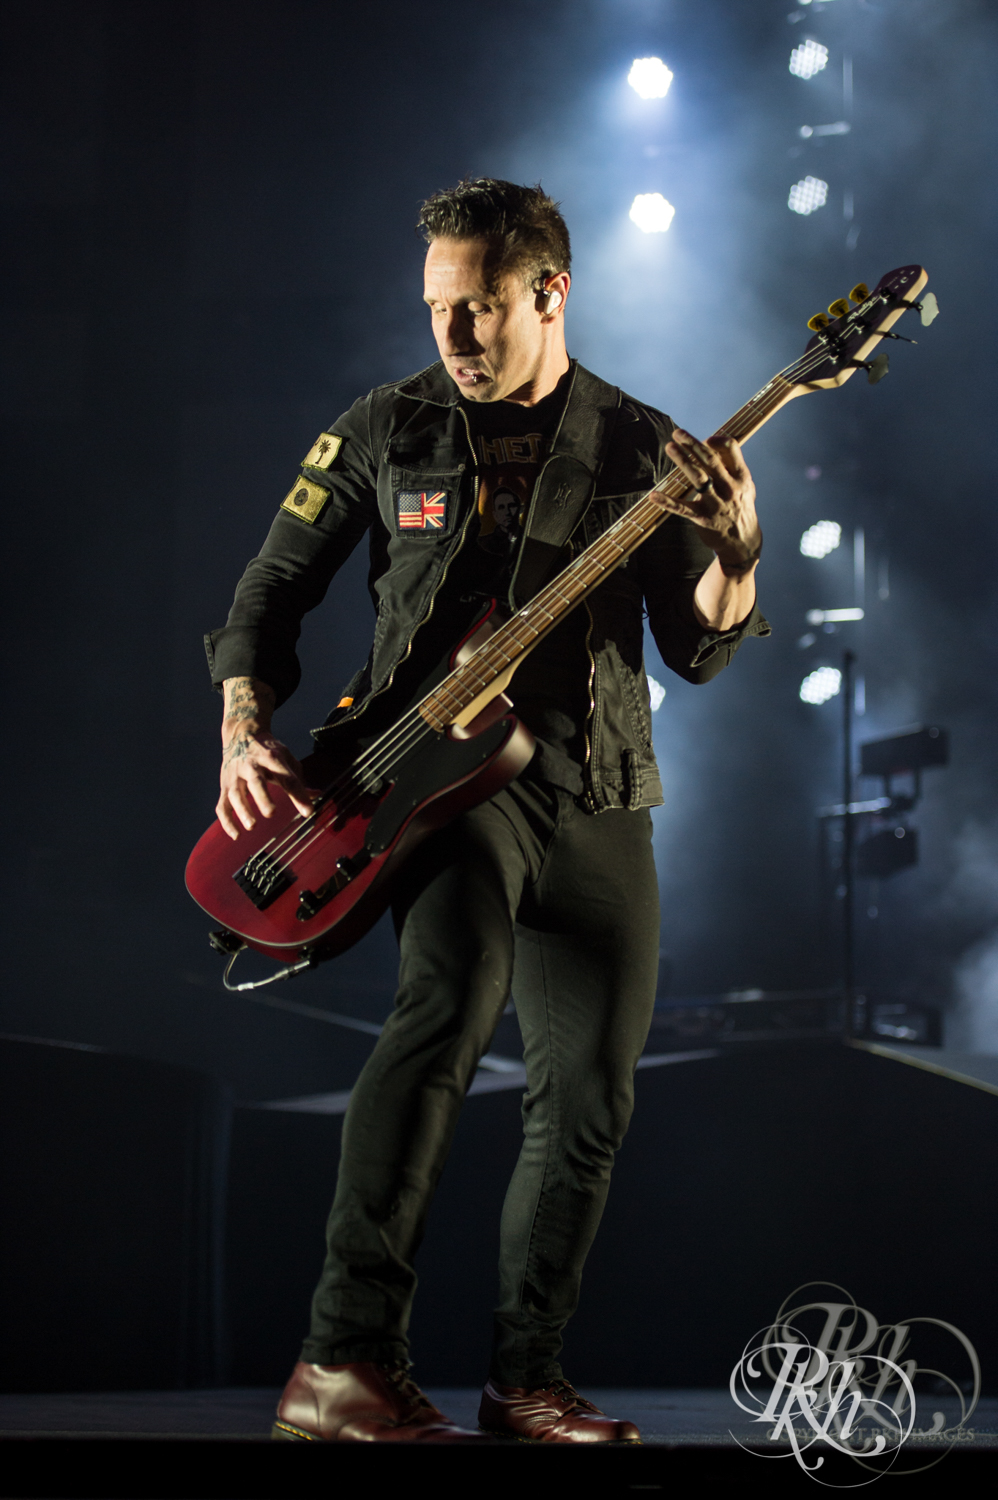 Shinedown - Minnesota Concert Photography - Target Center - Minneapolis - RKH Images (4 of 19).jpg